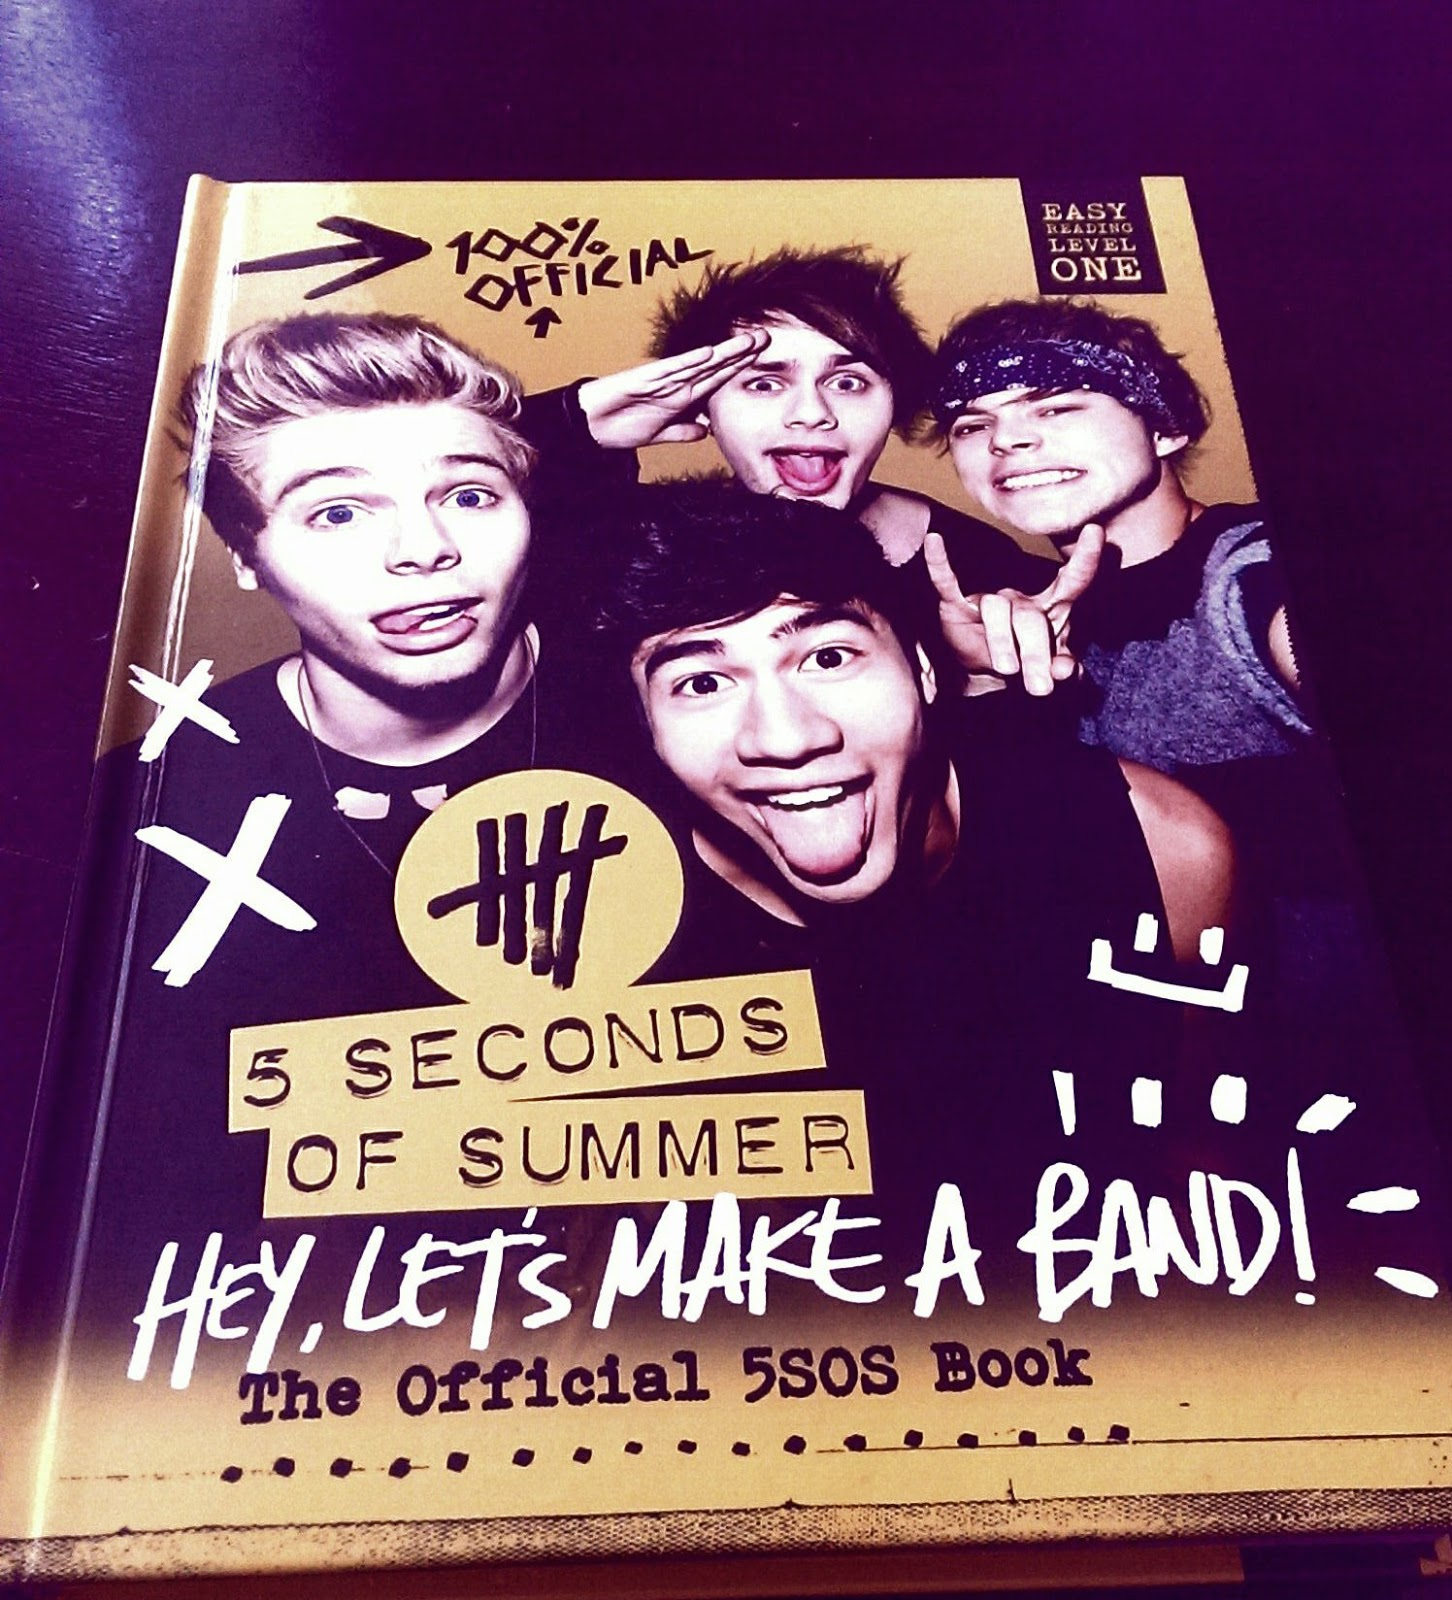 5 seconds of summer lets make a band the official 5sos book